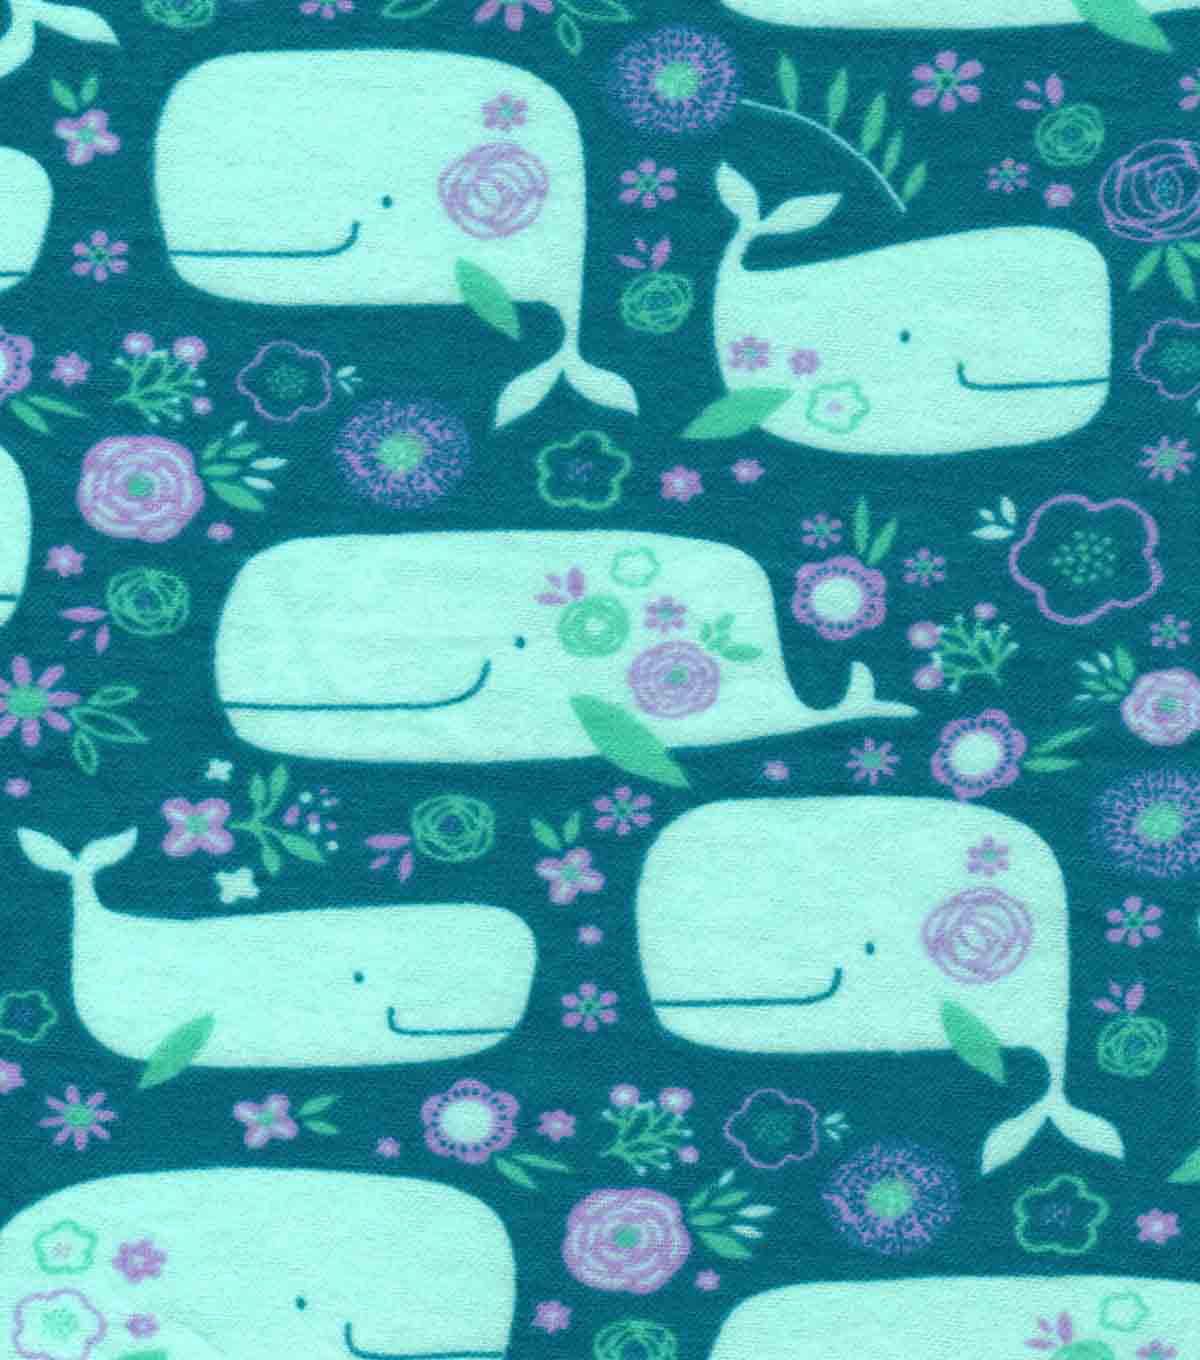 Snuggle Flannel Fabric -Pretty Whales